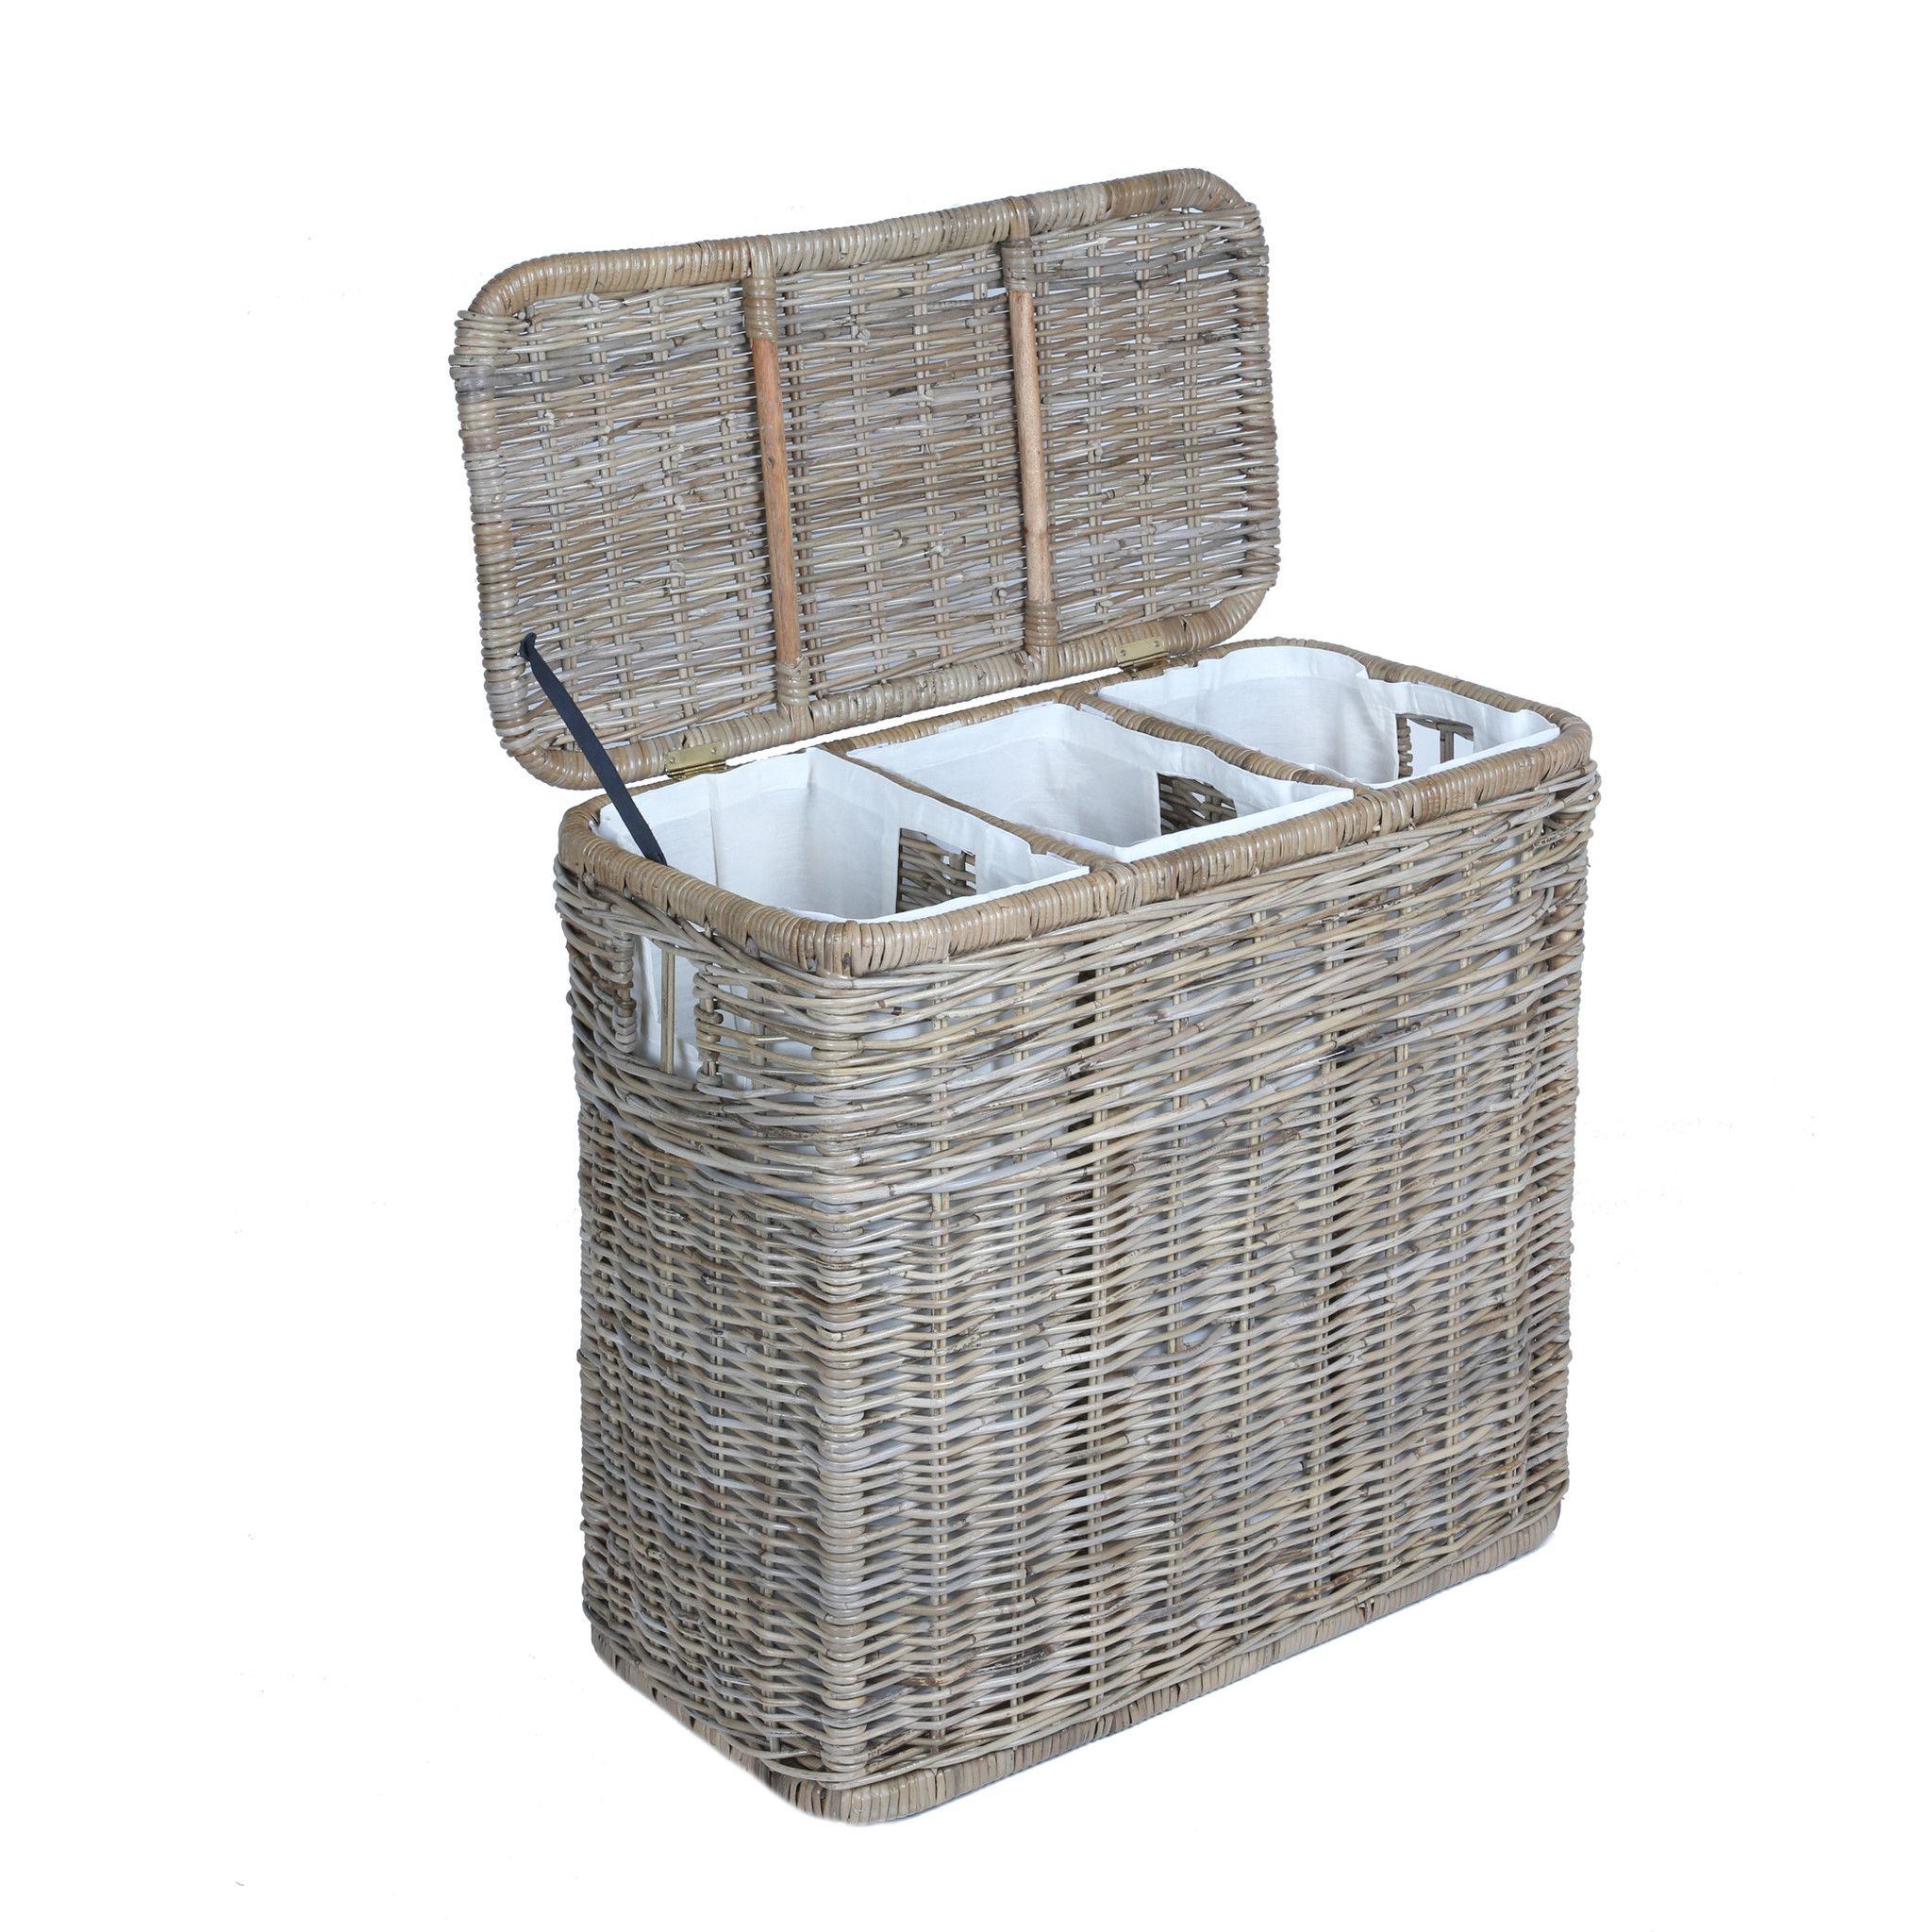 3 Compartment Kubu Wicker Laundry Hamper Wicker Laundry Hamper